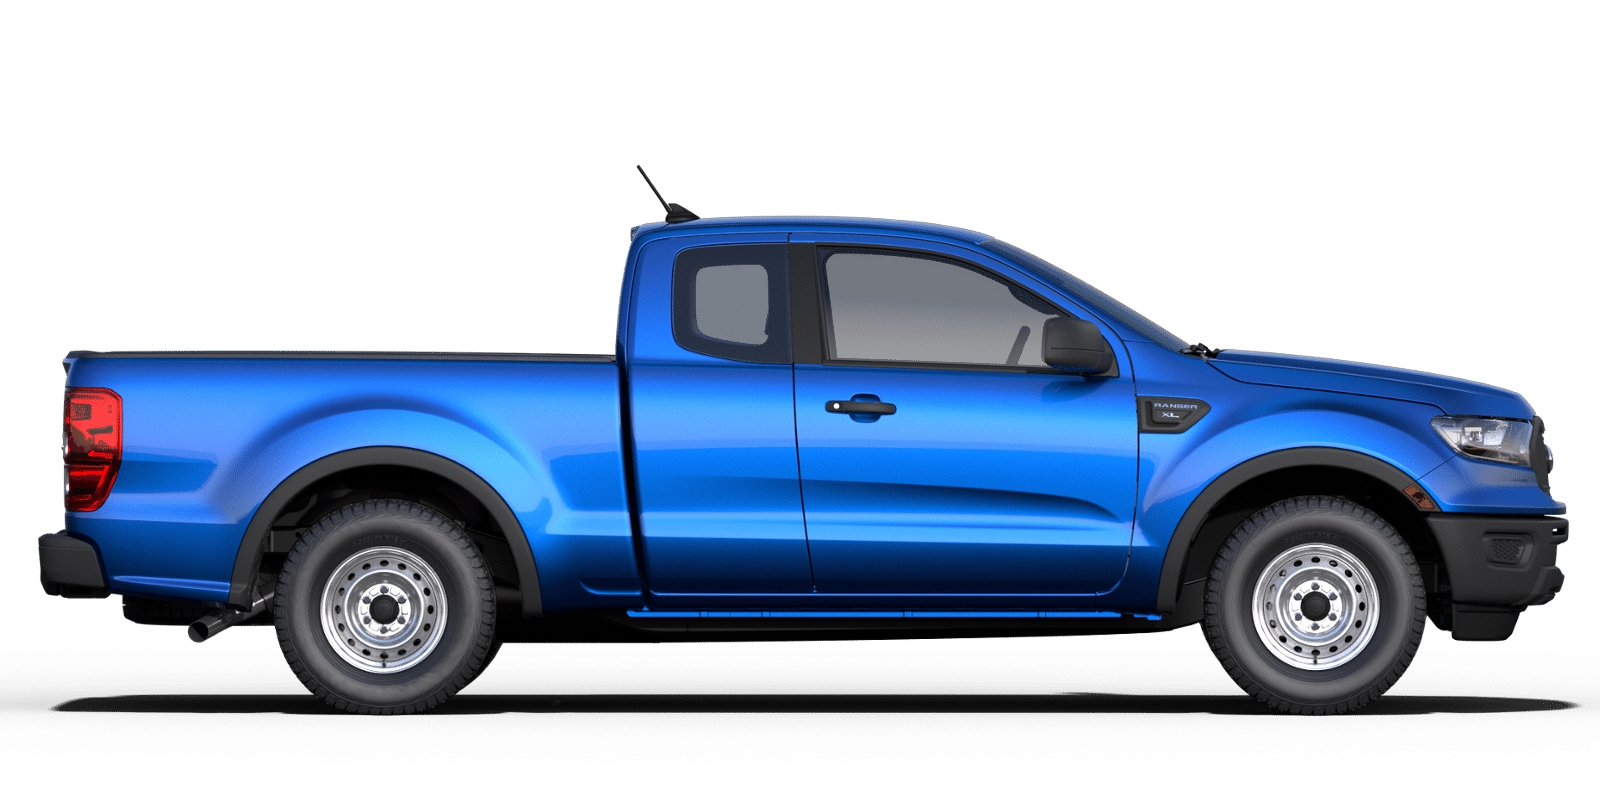 Exterior view of a blue 2019 Ford Ranger SuperCab